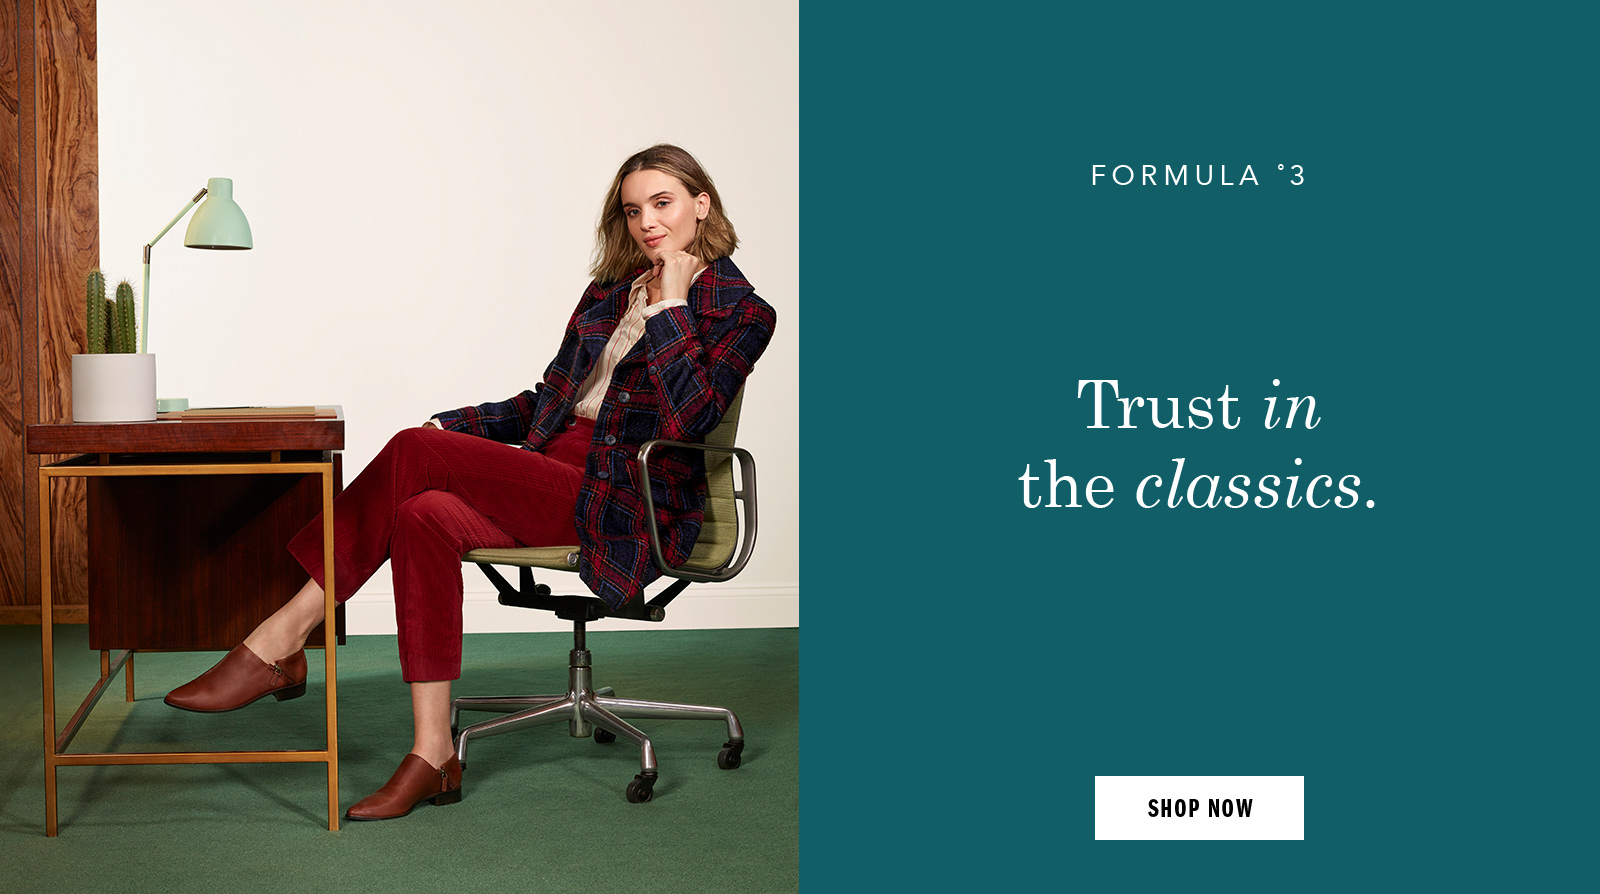 Trust in the classics - Shop Women's Shoes and Apparel